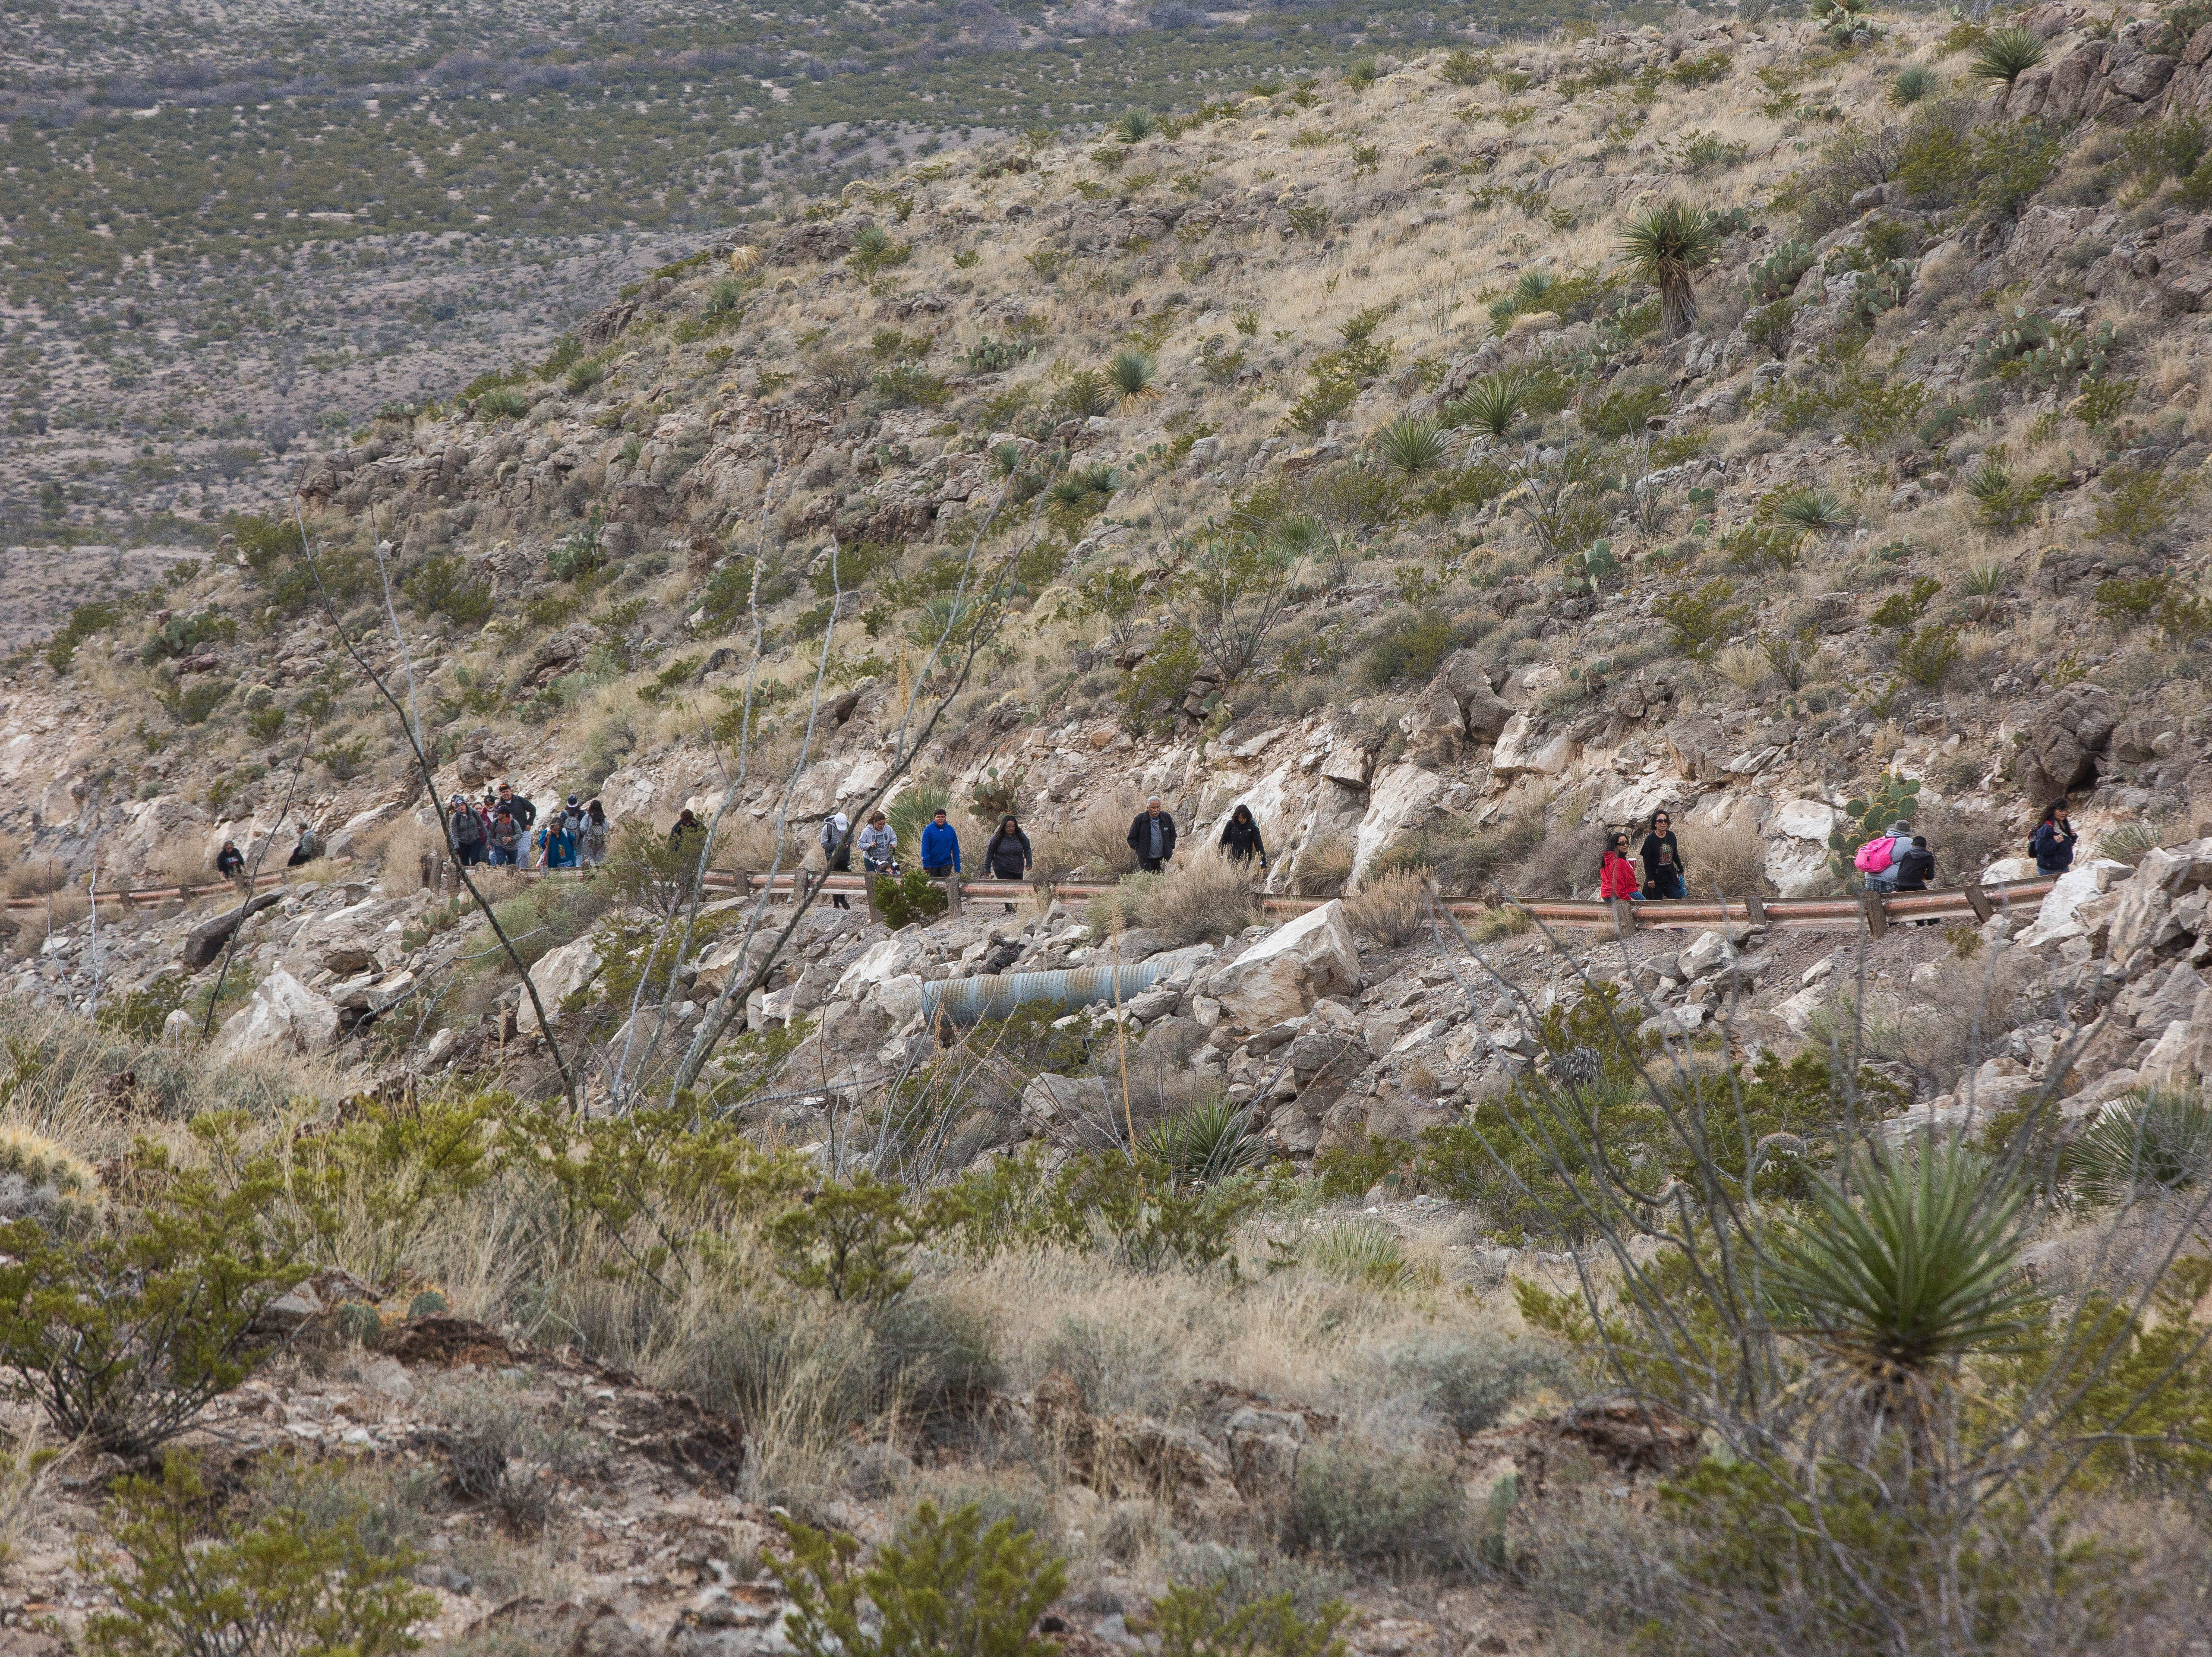 During the second day of the Fiesta of Our Lady of Guadalupe, a pilgrimage is made from the Tortugas Pueblo to the top of Tortugas Mountain on Tuesday, Dec. 11, 2018.